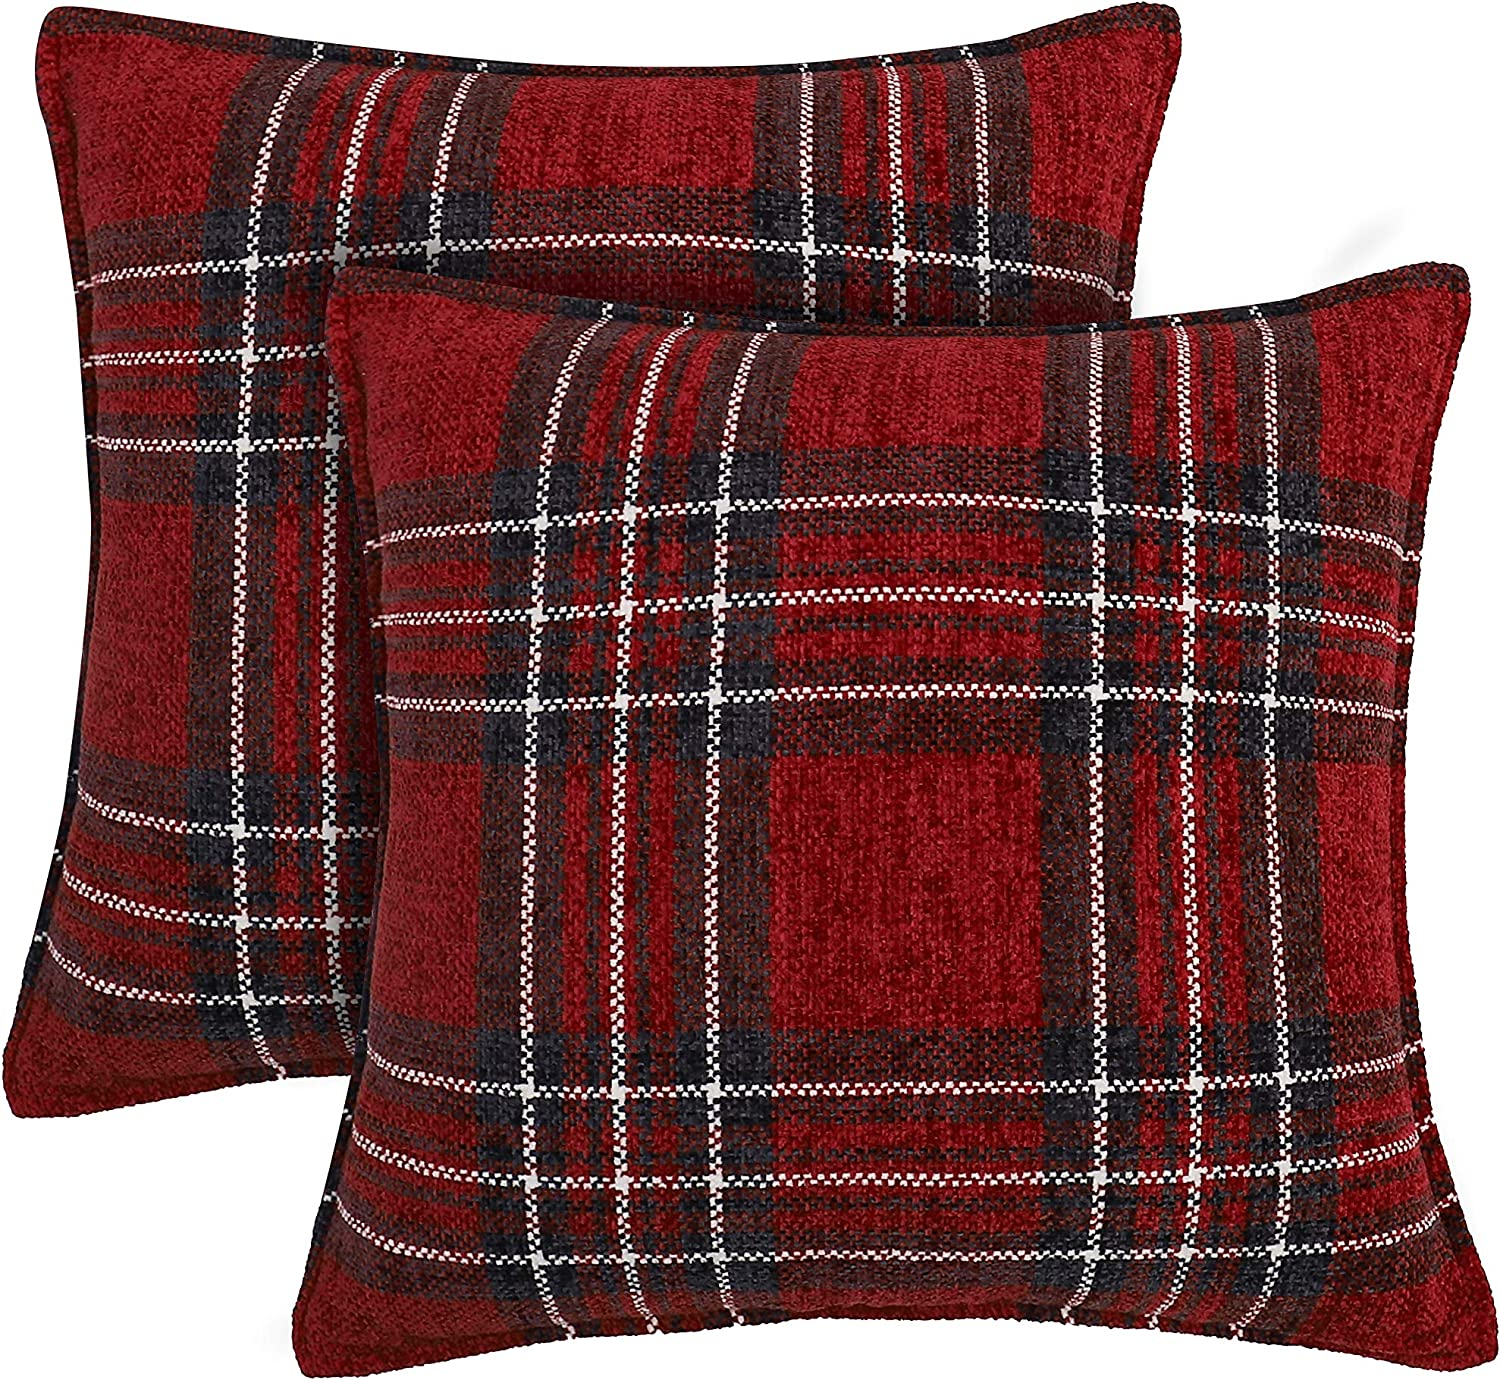 Muse Dream Christmas Holiday Pillow Covers Decorative Red and Navy Plaid Throw Square Pillow Cases 18x18 Set of 2,Soft Chenille Fabric Farmhouse Sofa Home Decor,Red Navy,18x18 inch